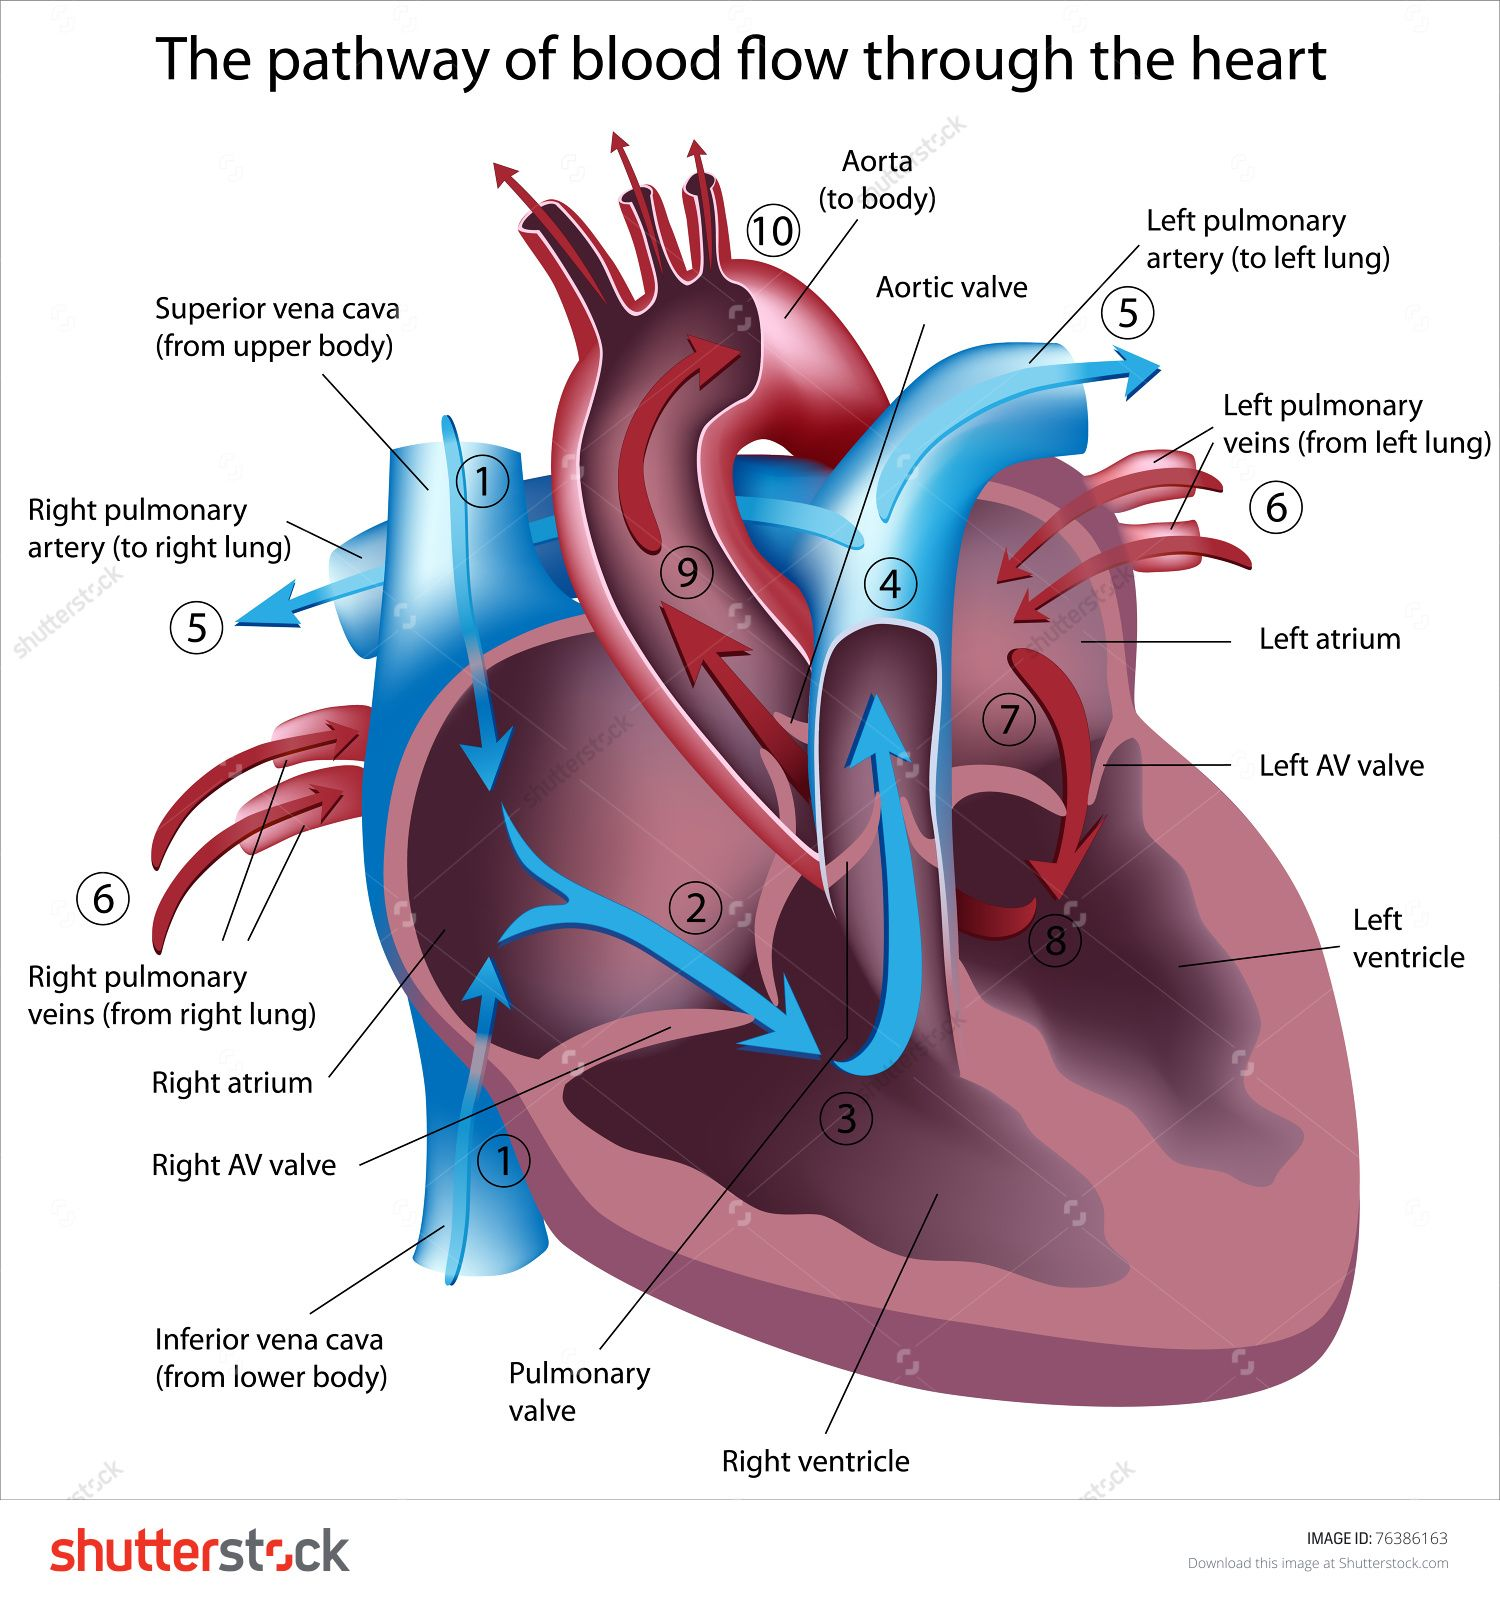 Pathway of blood flow through the heart | AUM Nursing School ...